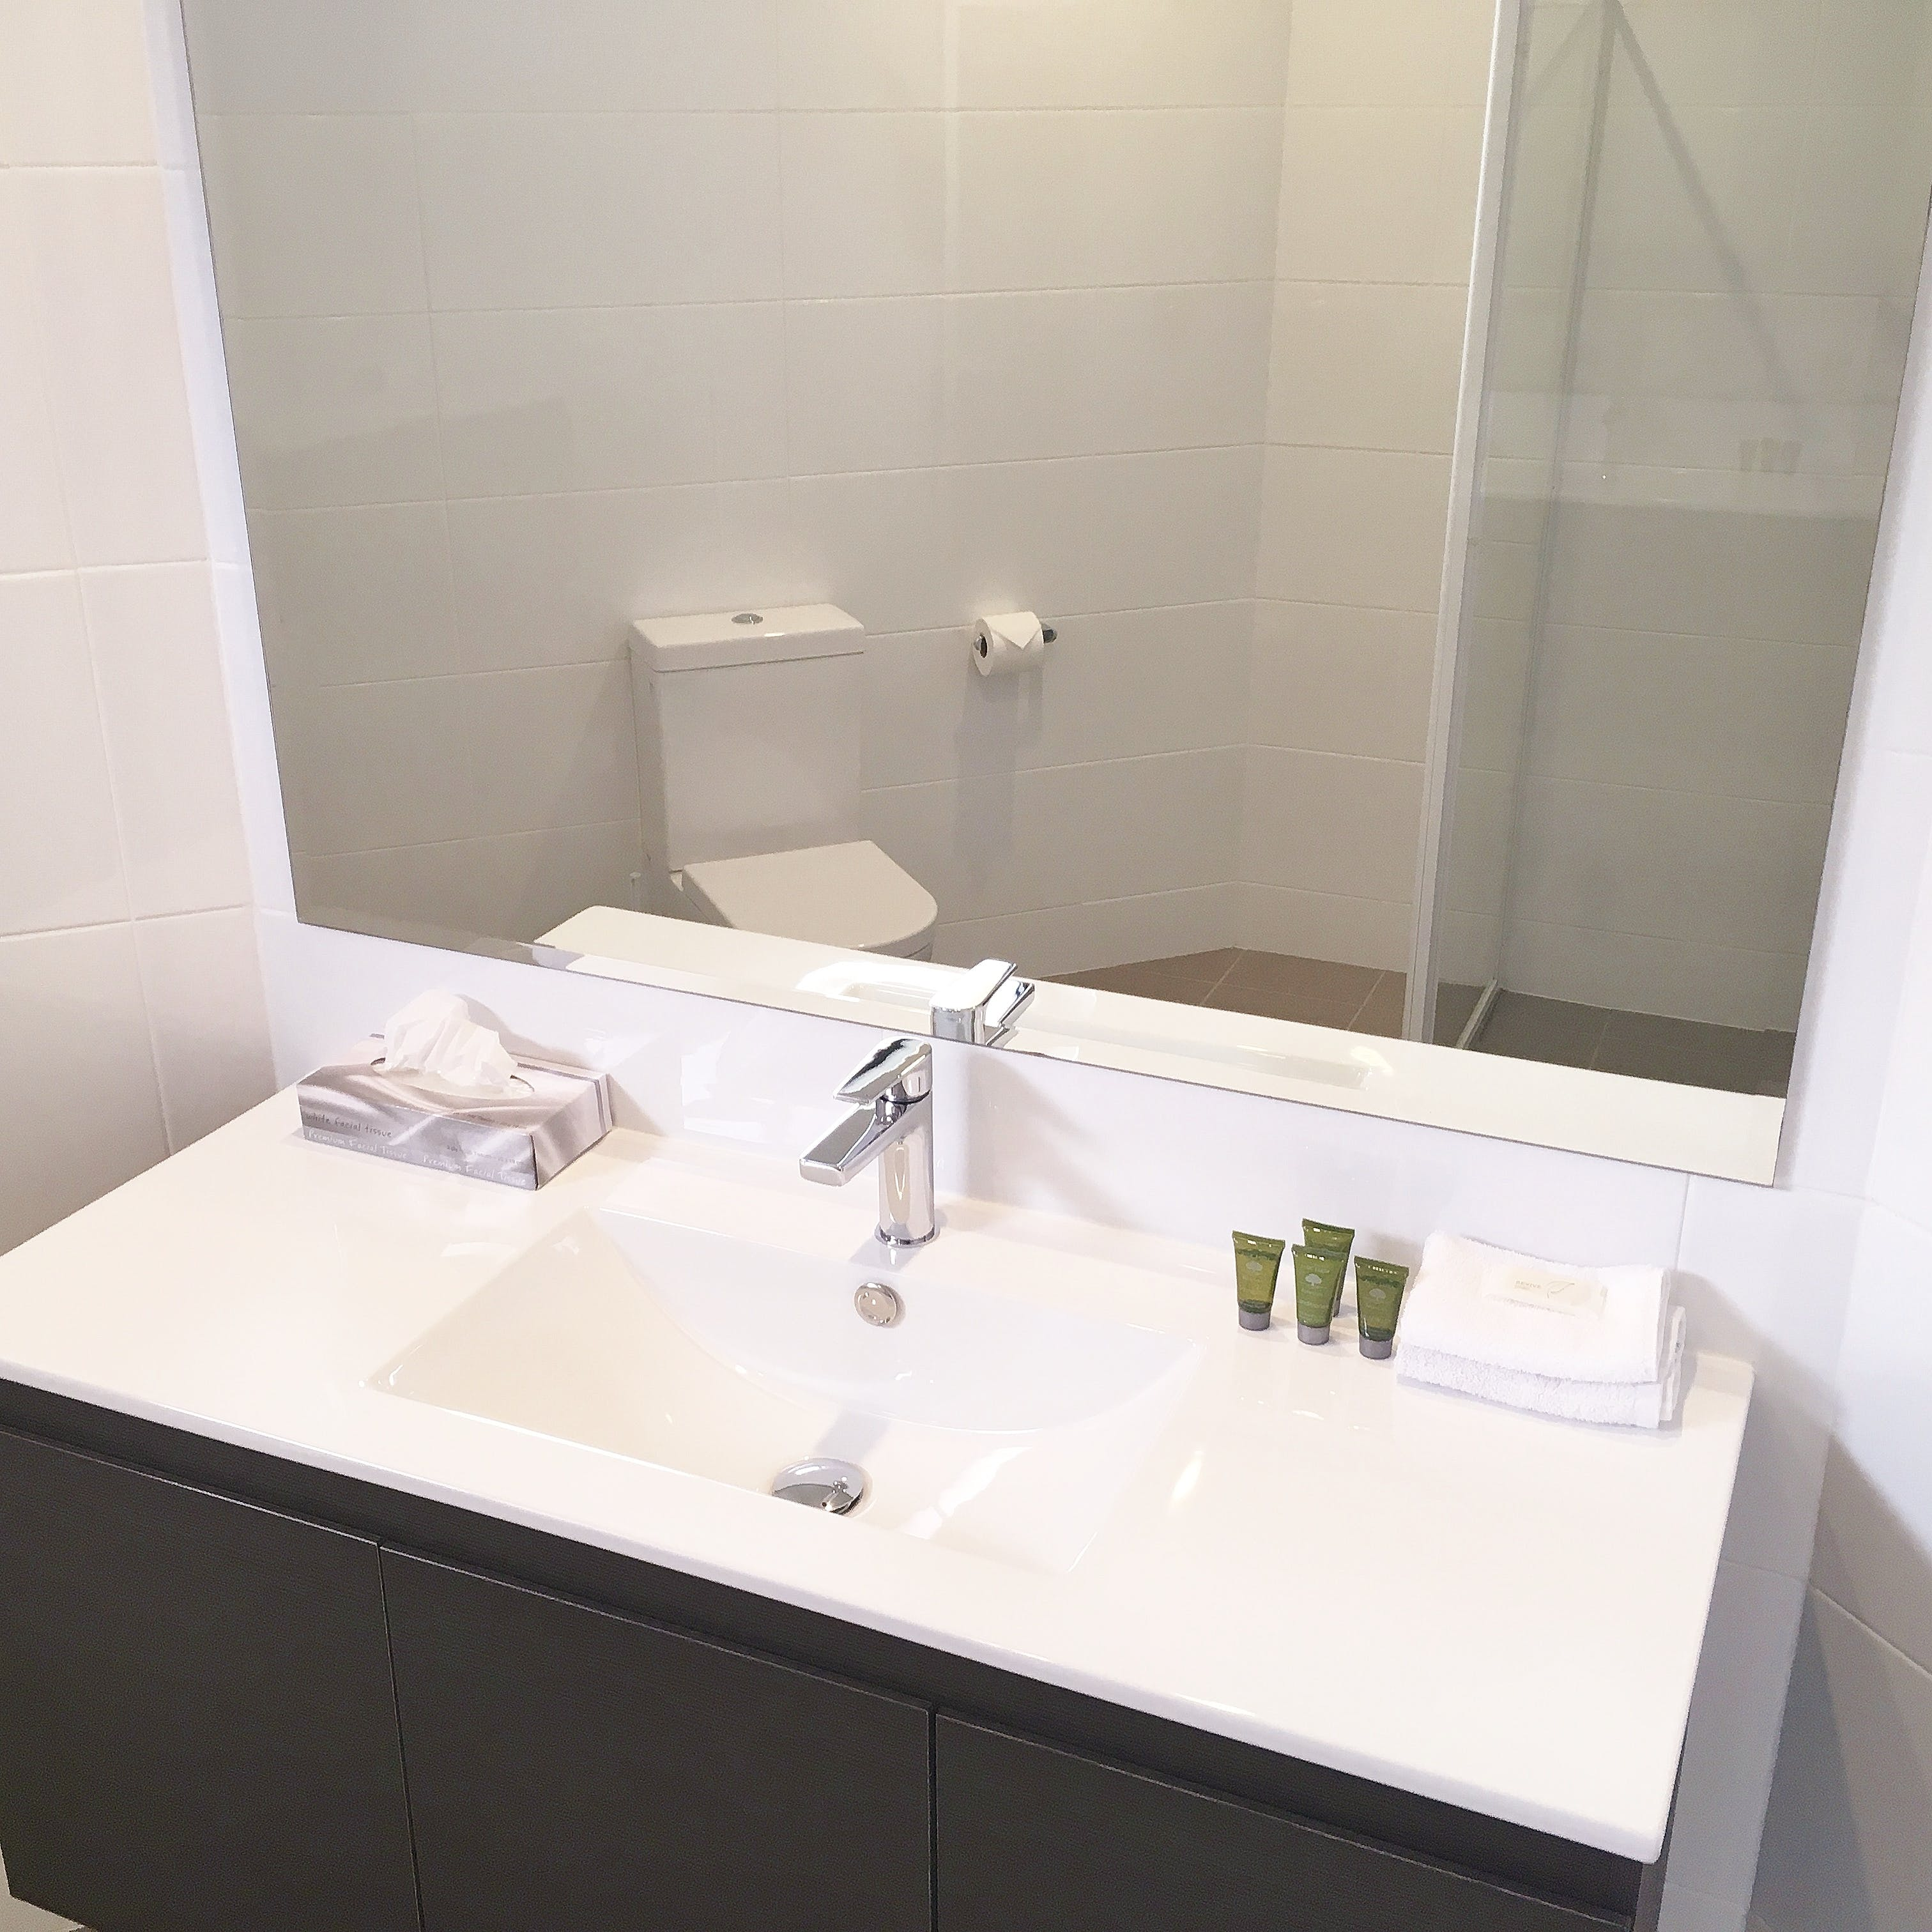 Kangaroo Island Accommodation Bathroom